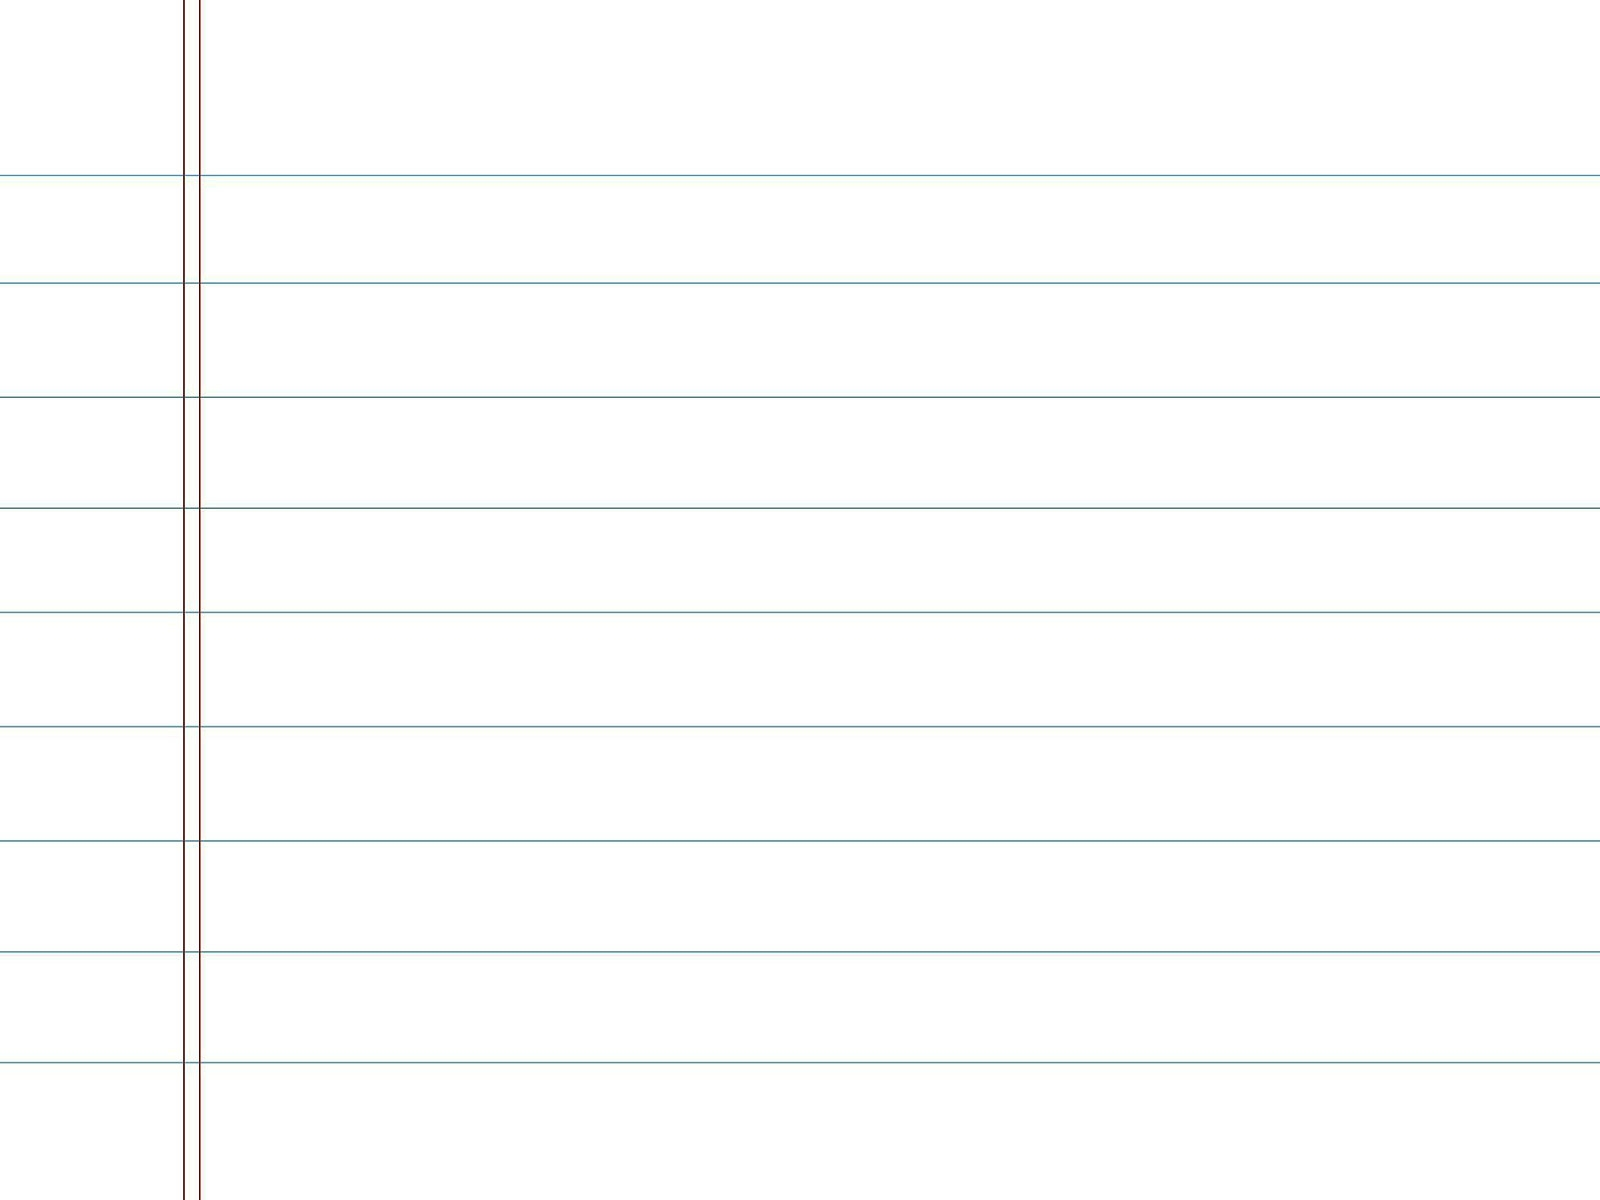 Striped Paper Note Minimalist Background